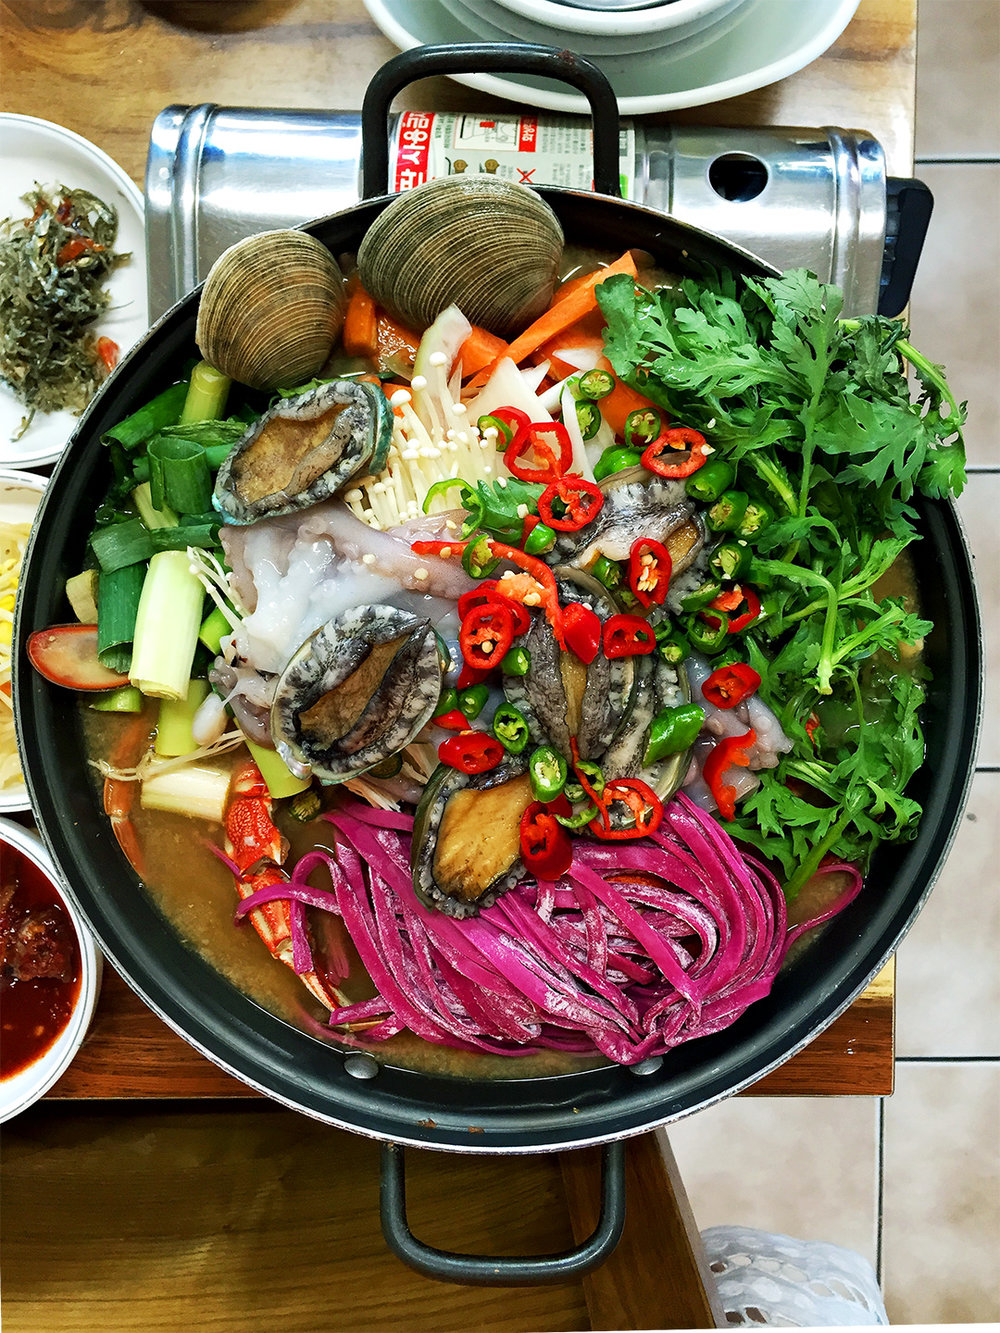 The freshest seafood hot pot with purple cactus infused noodles, octopus, crab, abalone, clams, and much more from Hanseong Restaurant (한성식당). Address: 202-1 Seongsan-ri, Seongsan-eup, Seogwipo-si, Jeju-do, South Korea Info: Here